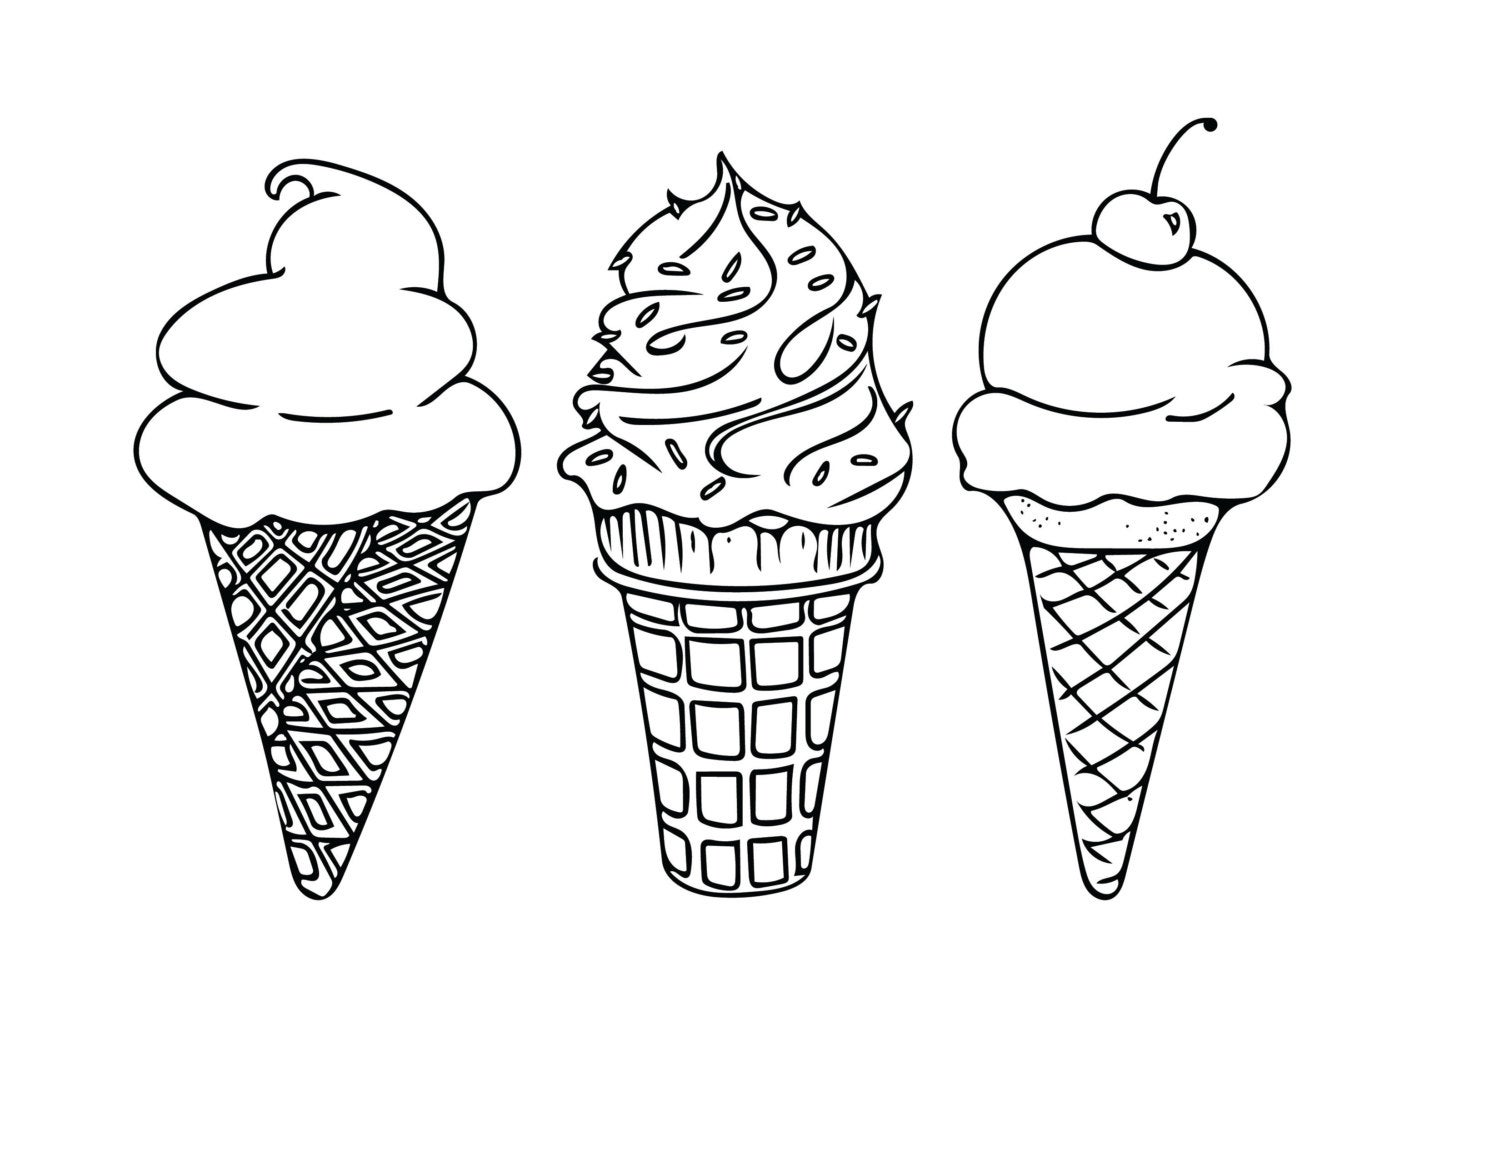 coloring pages of ice cream free printable ice cream coloring pages for kids of pages coloring ice cream